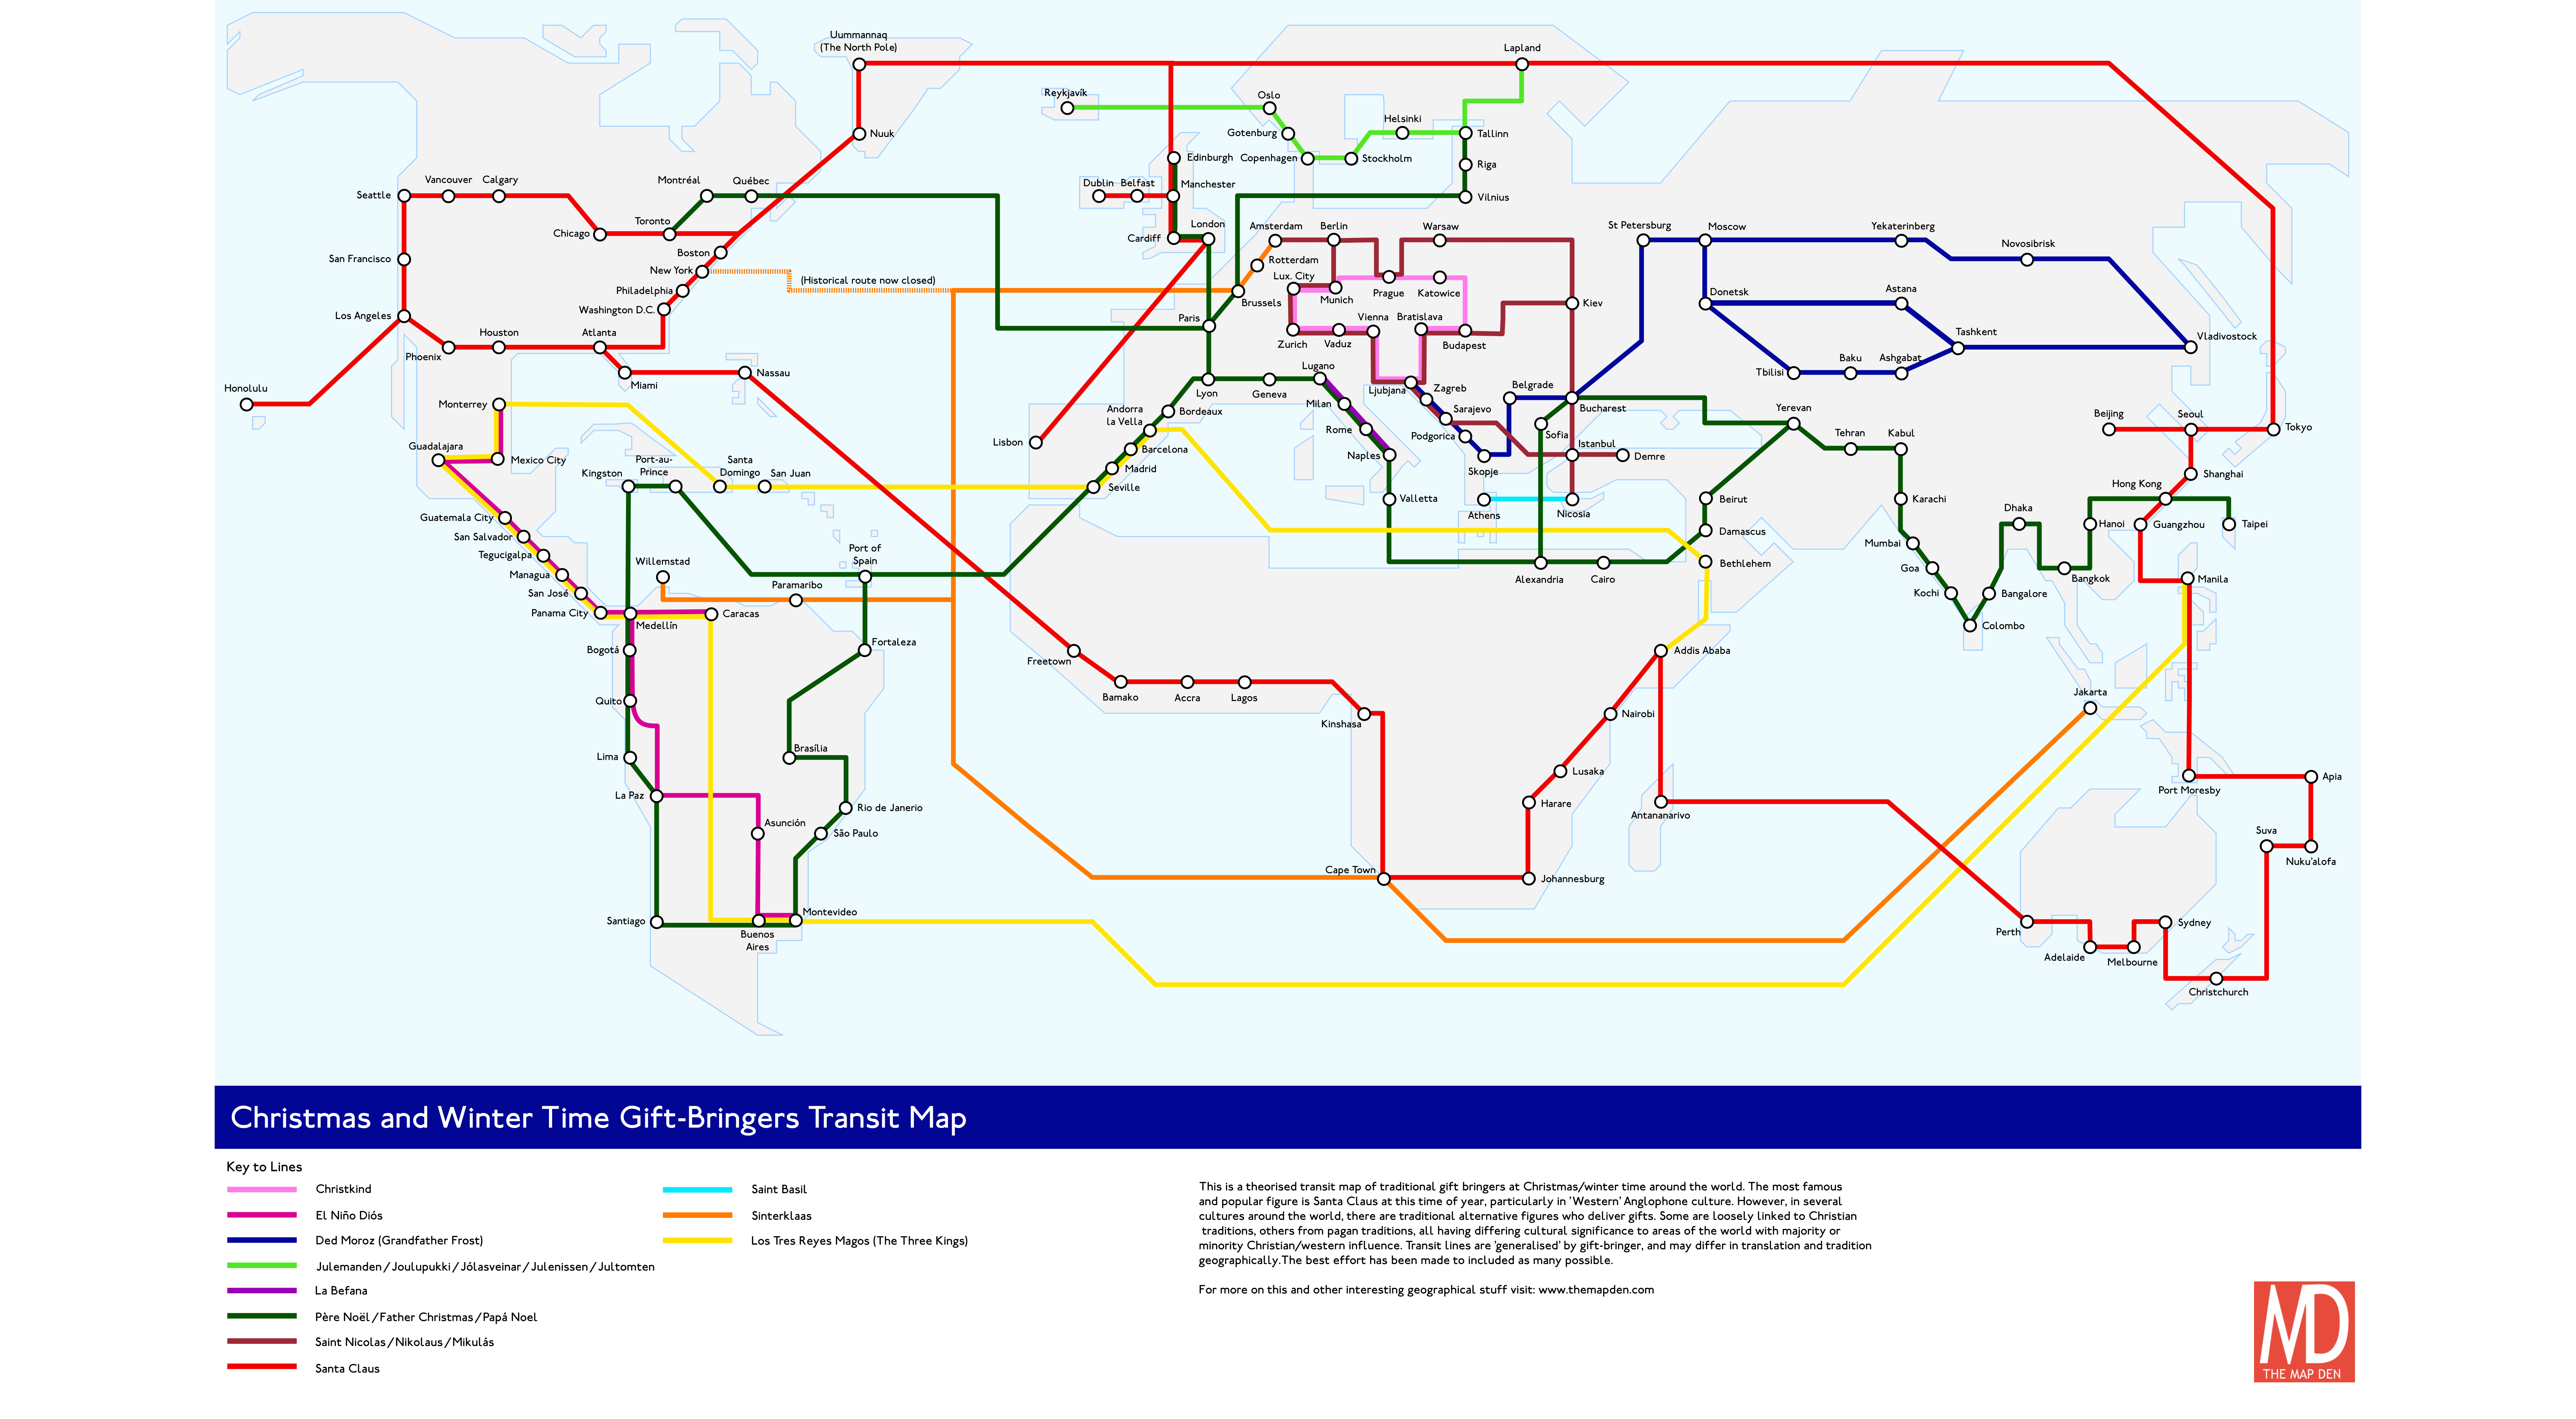 La Metro Map 2018.Christmas Metro Map 2018 Who Delivers Your Presents The Map Den